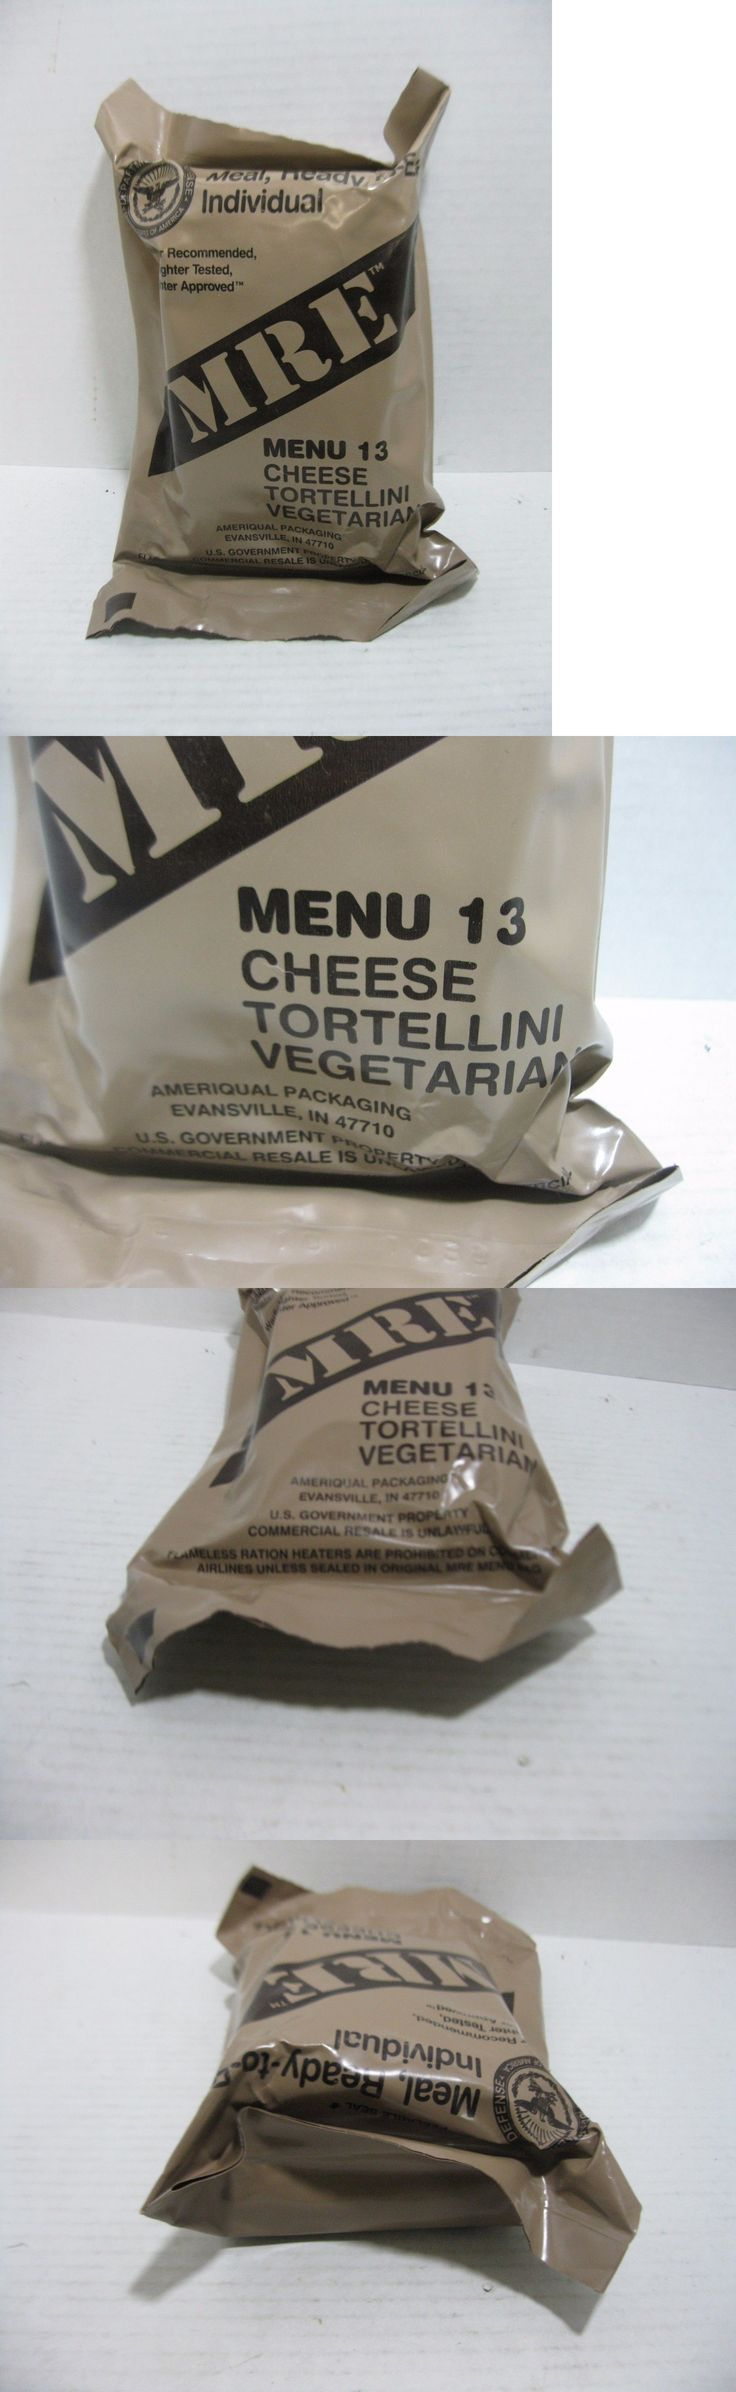 Food And Drink: Mre Menu 13 Cheese Tortellini Vegetarian Sealed Ready To Eat Meal BUY IT NOW ONLY: $19.95